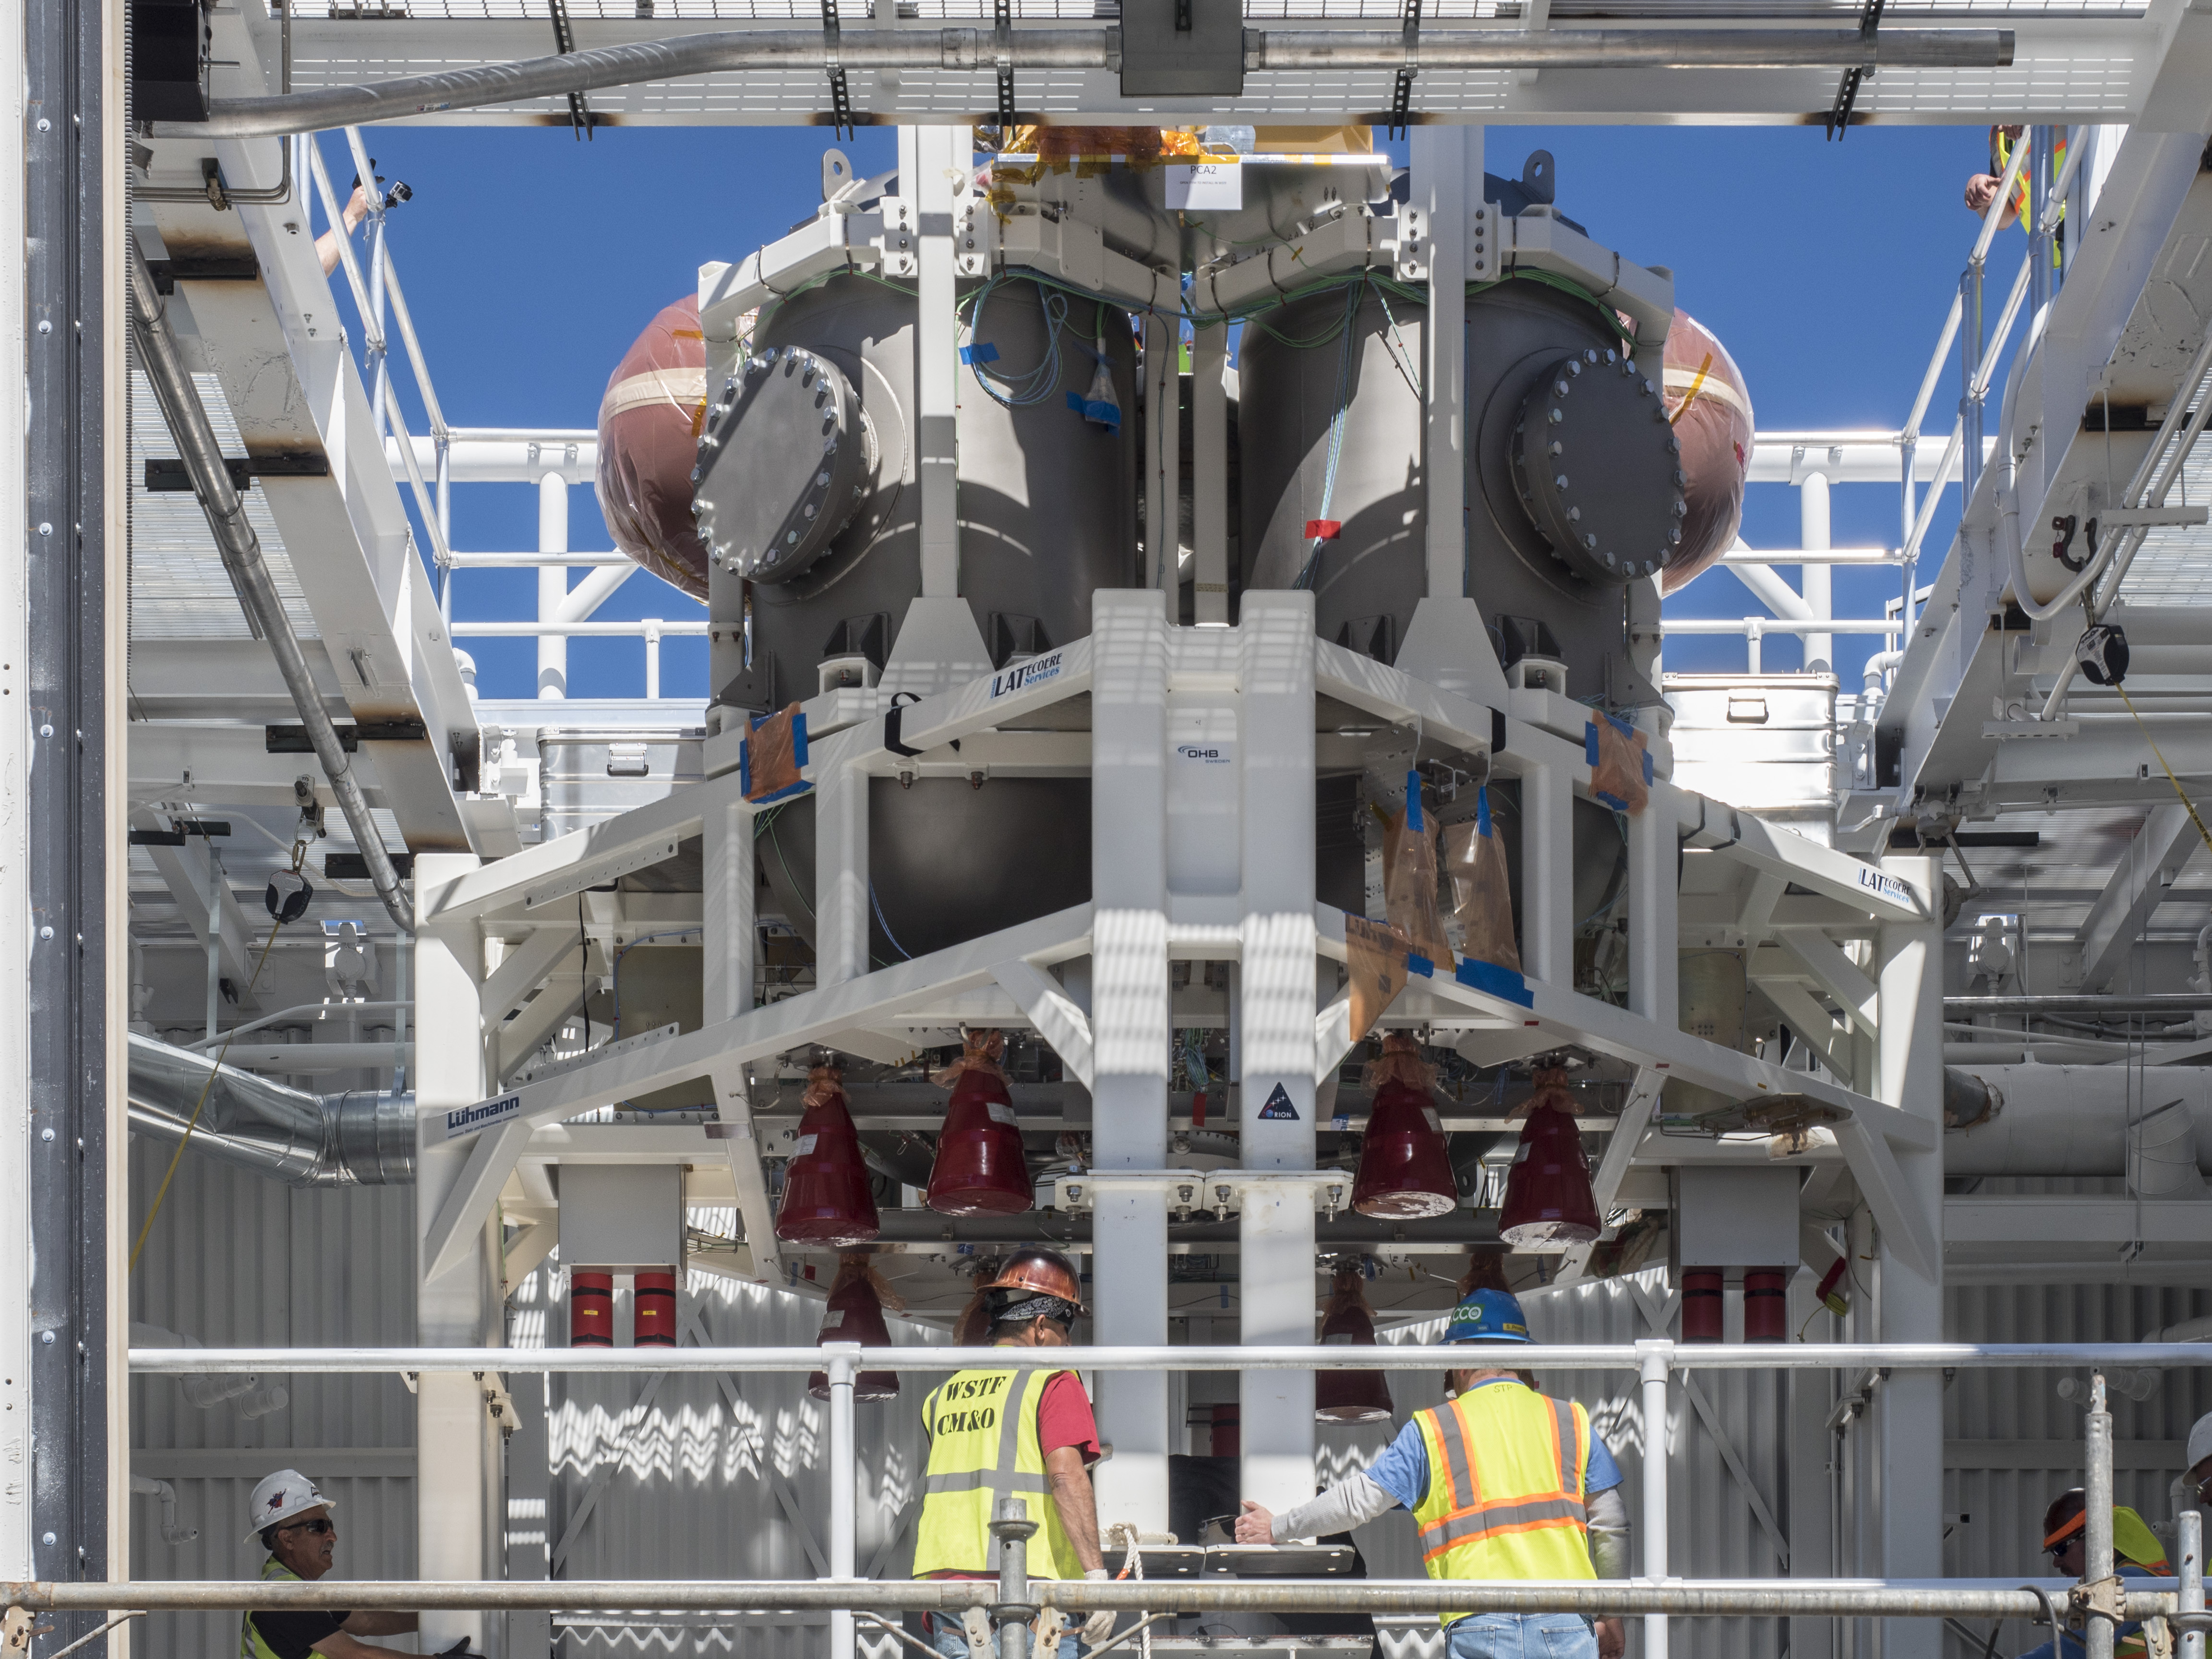 Orion Spacecraft Progress Continues With Installation of Module to Test Propulsion Systems